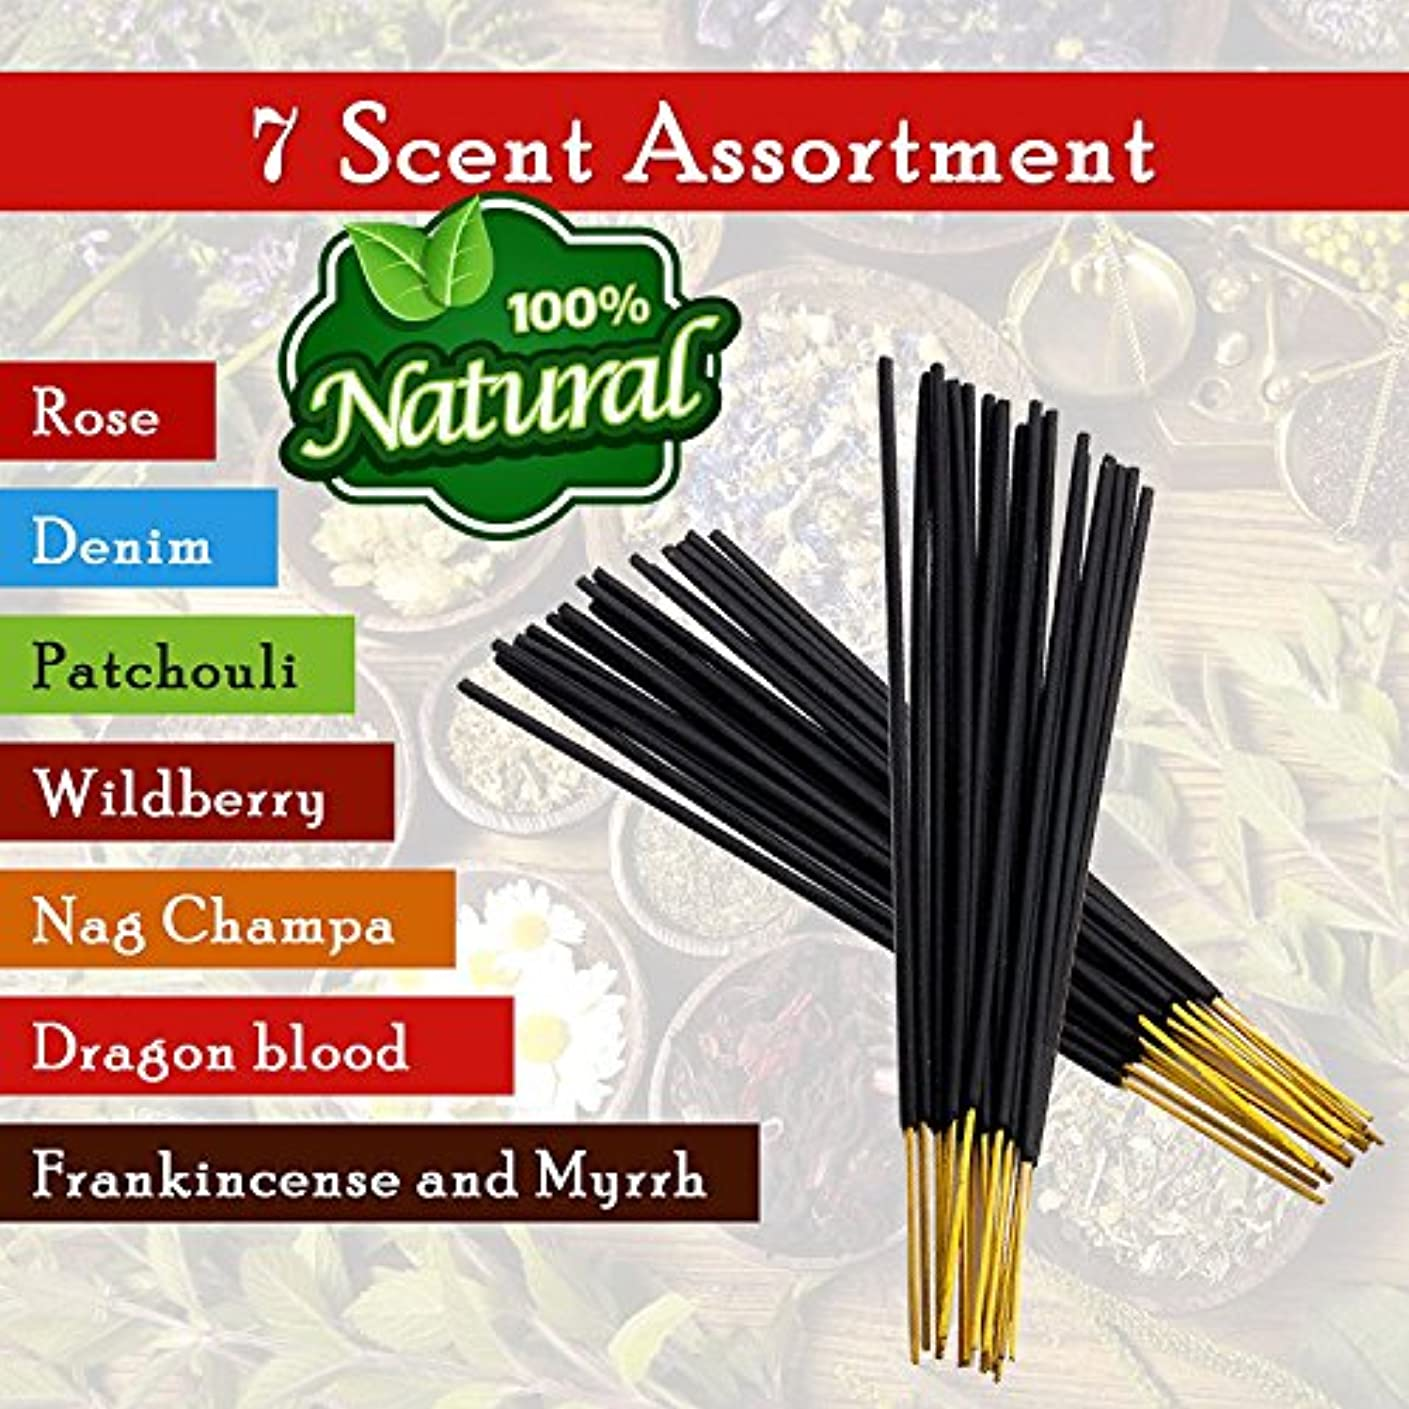 7-assorted-scents-Frankincense-and-Myrrh-Patchouli-Denim-Rose Dragon-blood-Nag-champa-Wildberry 100%-Natural-Incense-Sticks...